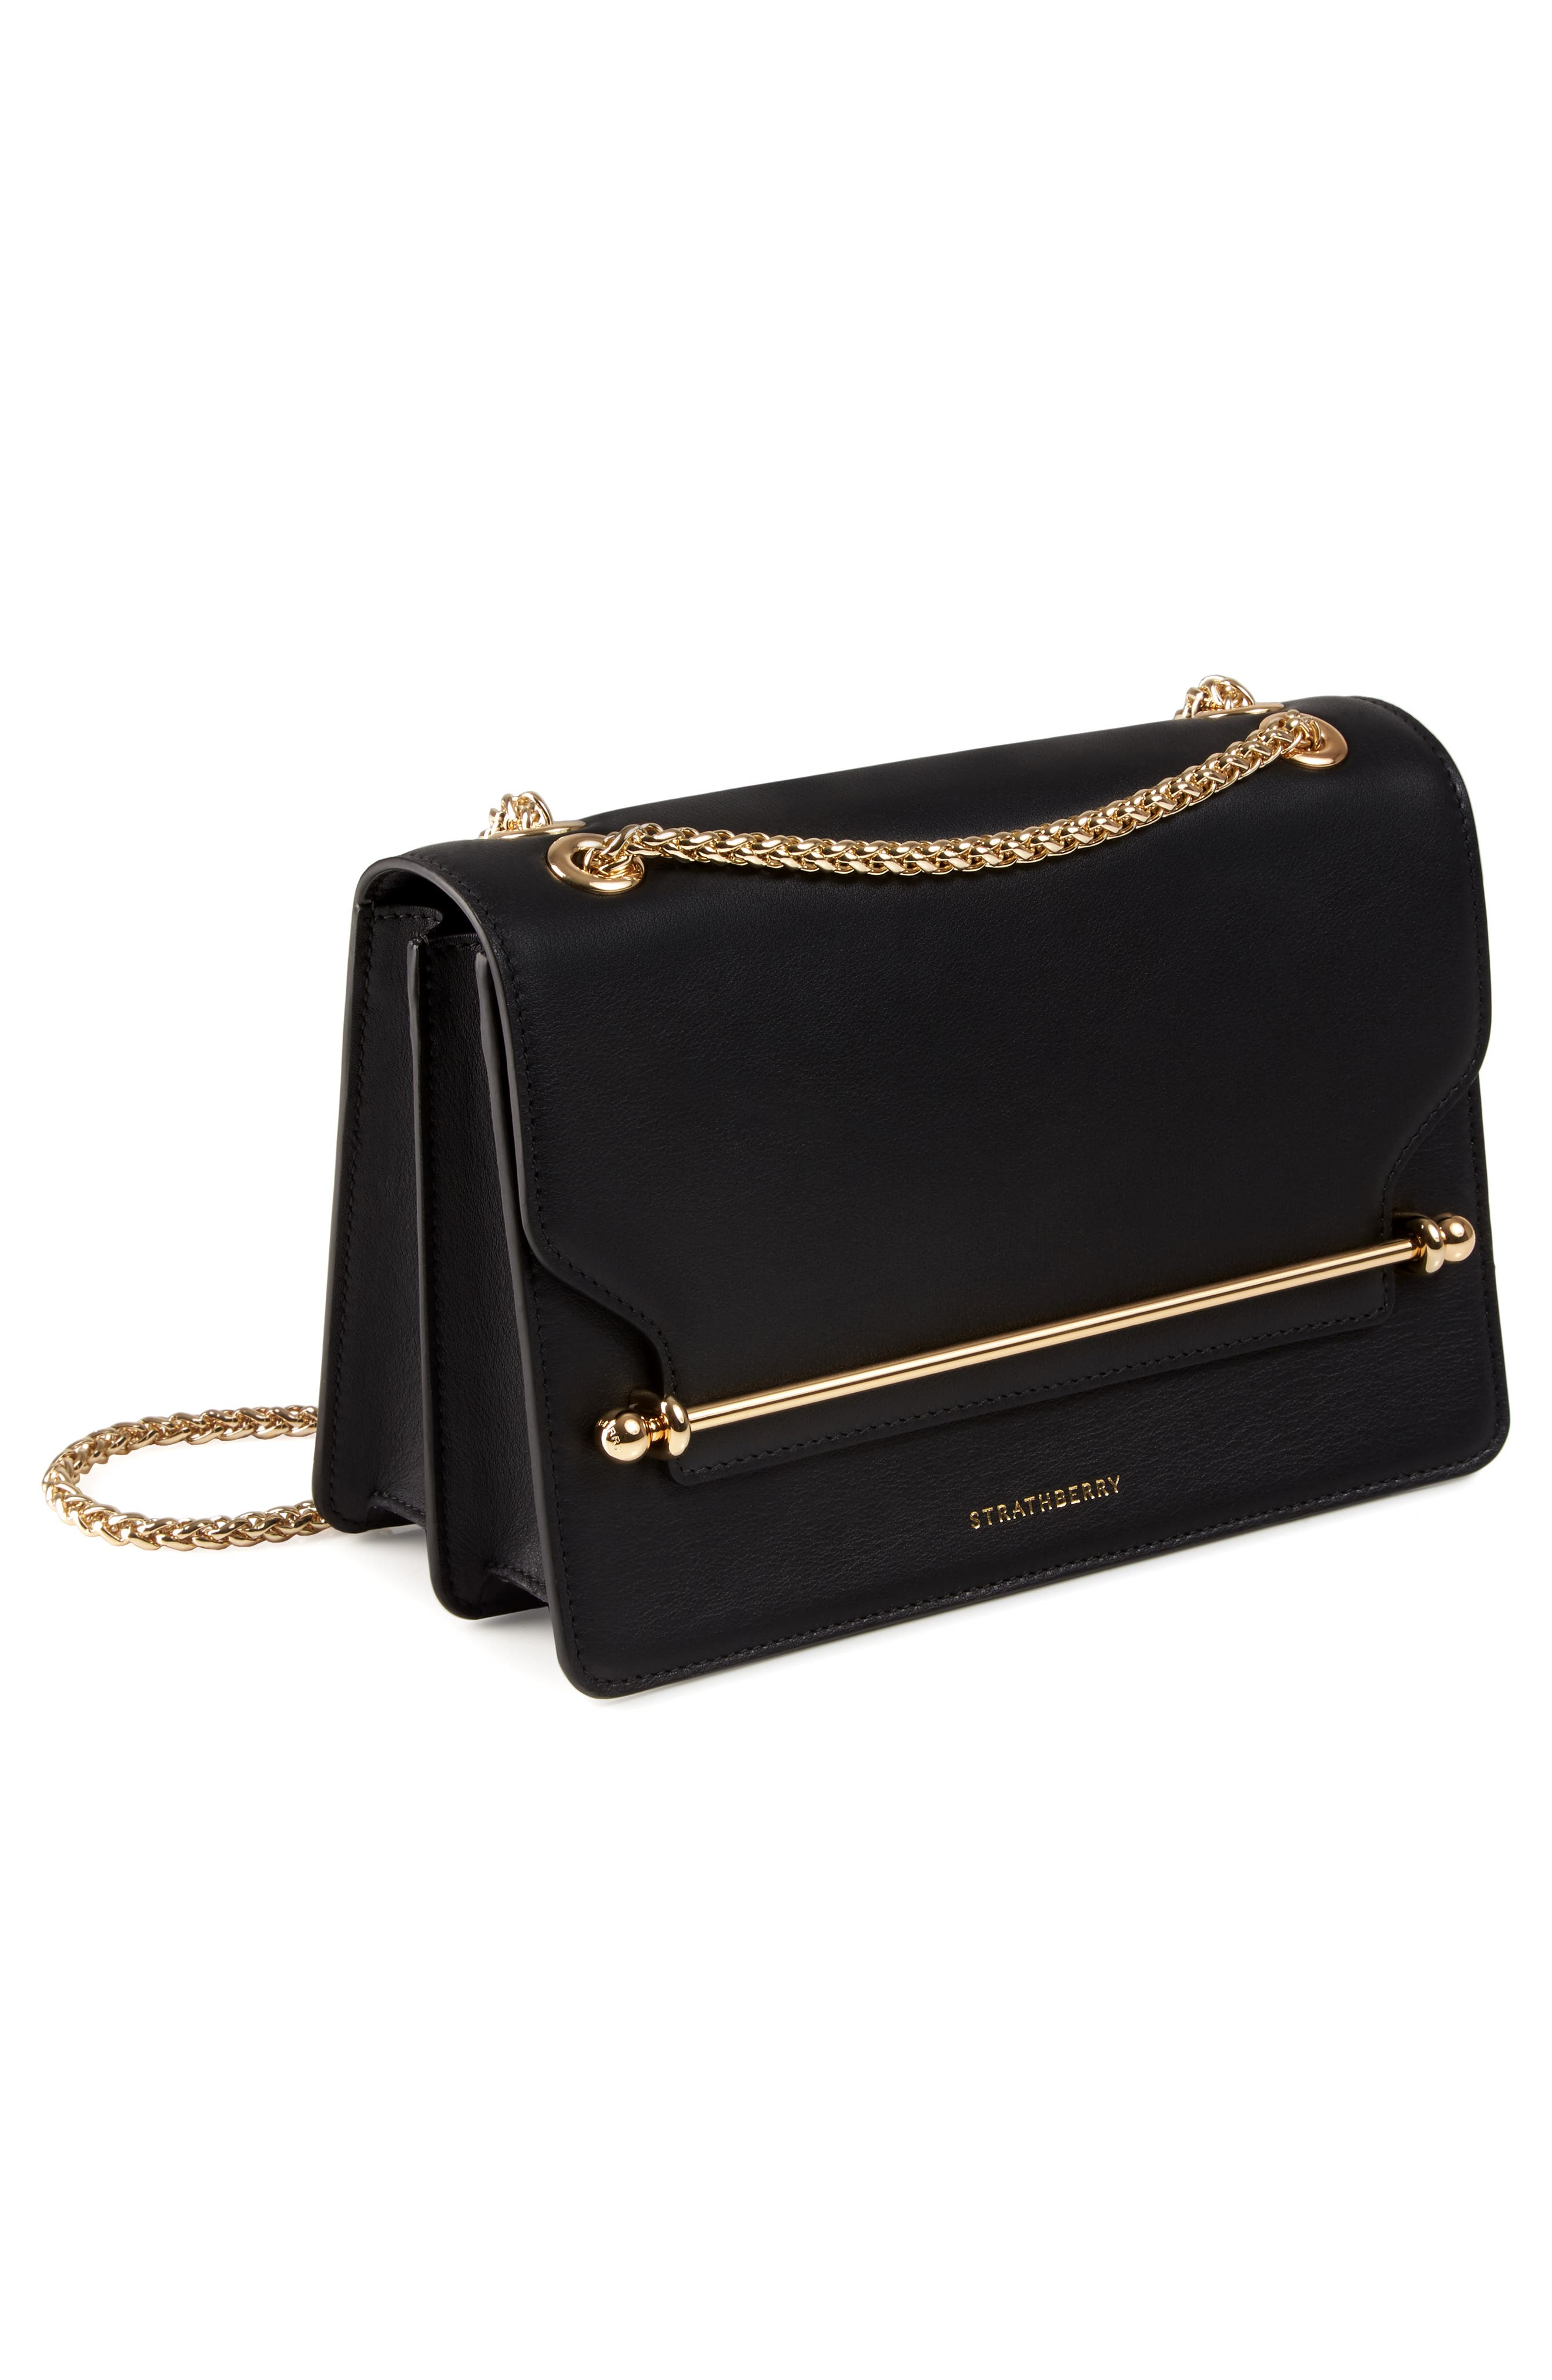 East/West Leather Crossbody Bag,                             Alternate thumbnail 4, color,                             BLACK